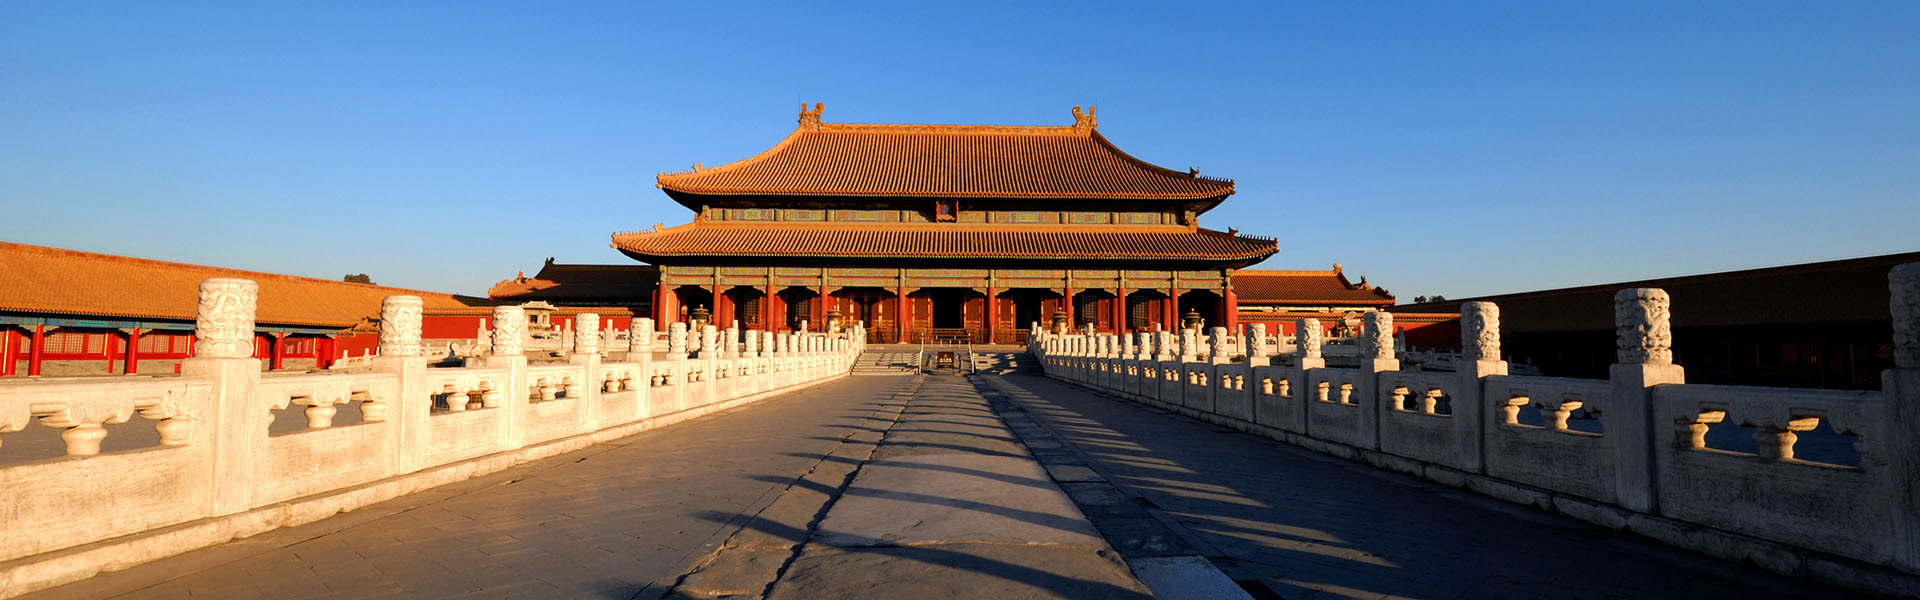 Step into China's splendid culture & history of 5000 years old